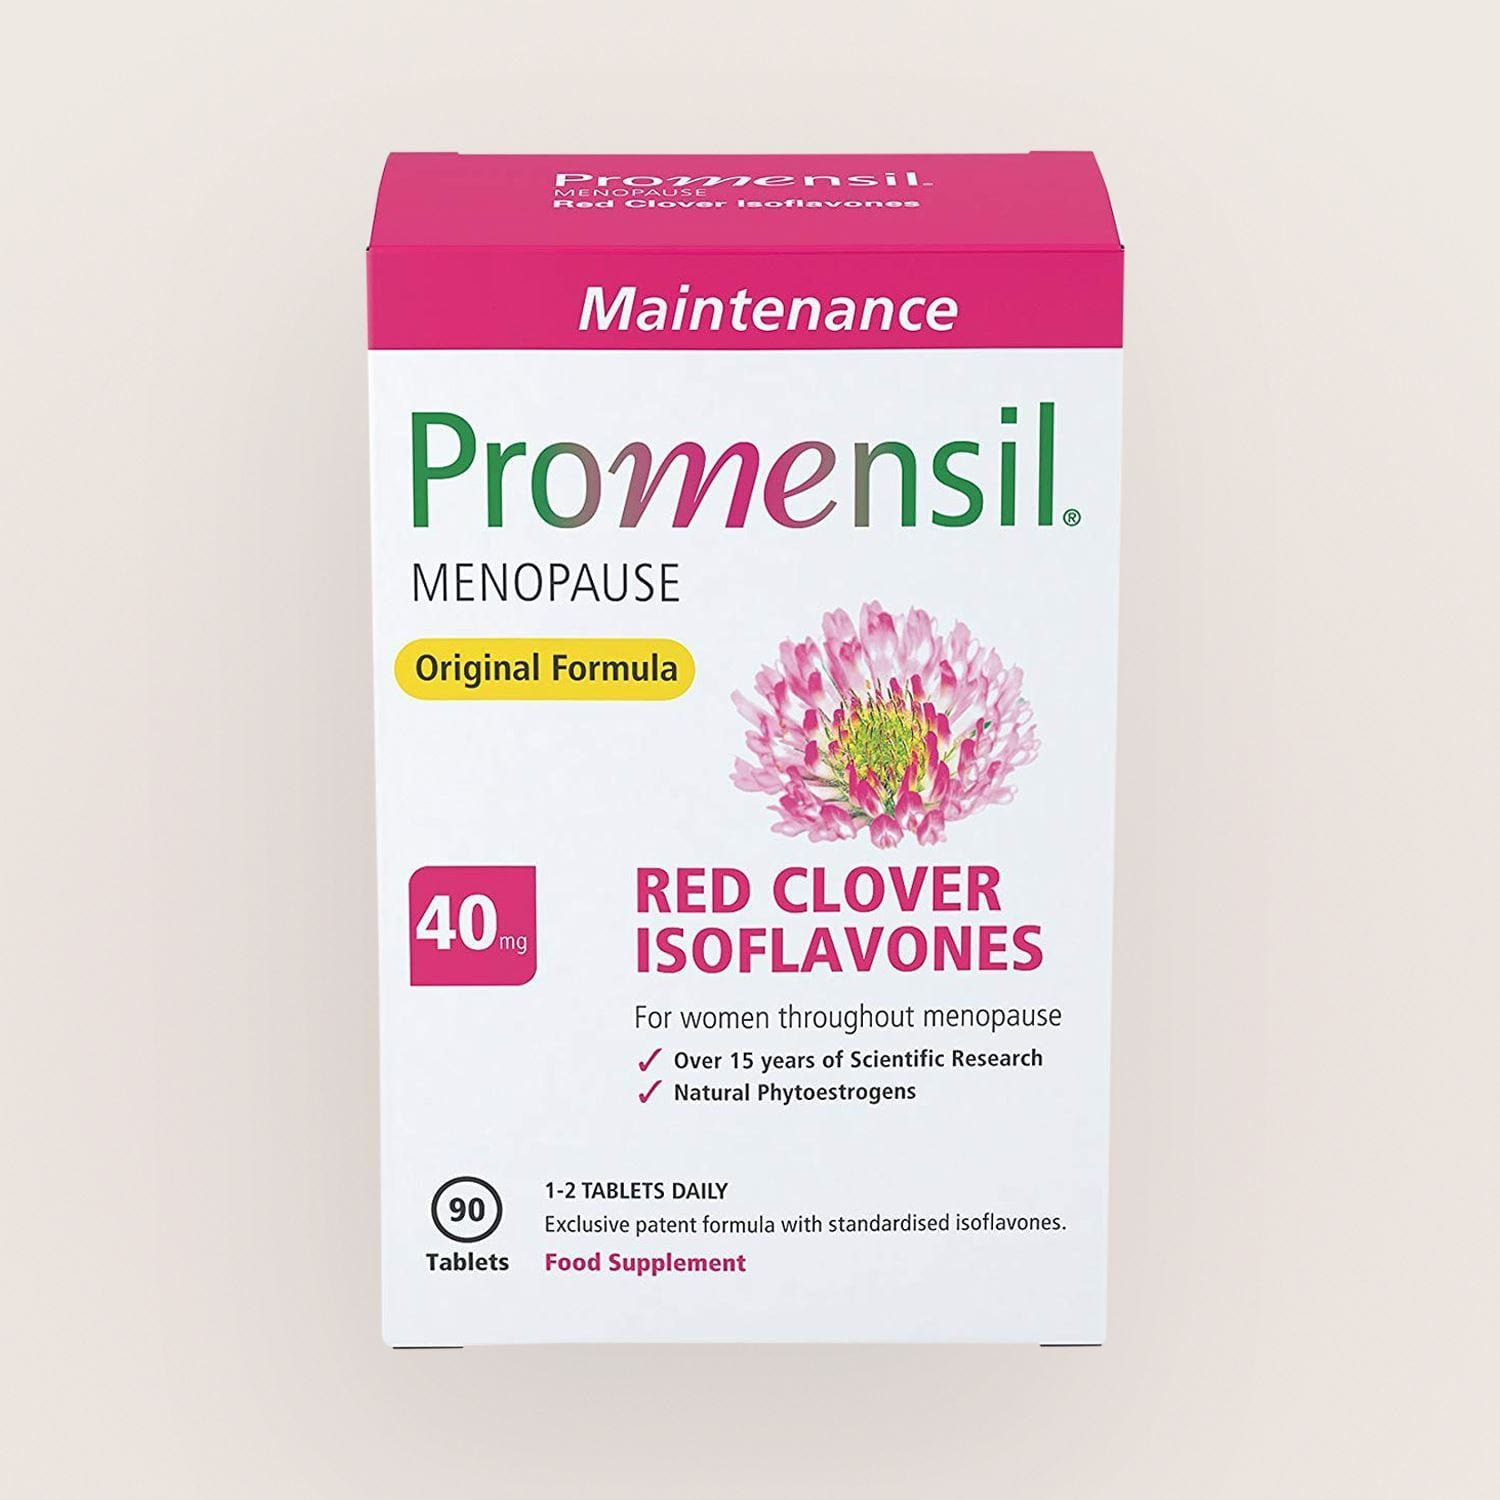 Promensil Original Menopause Tablets 40mg